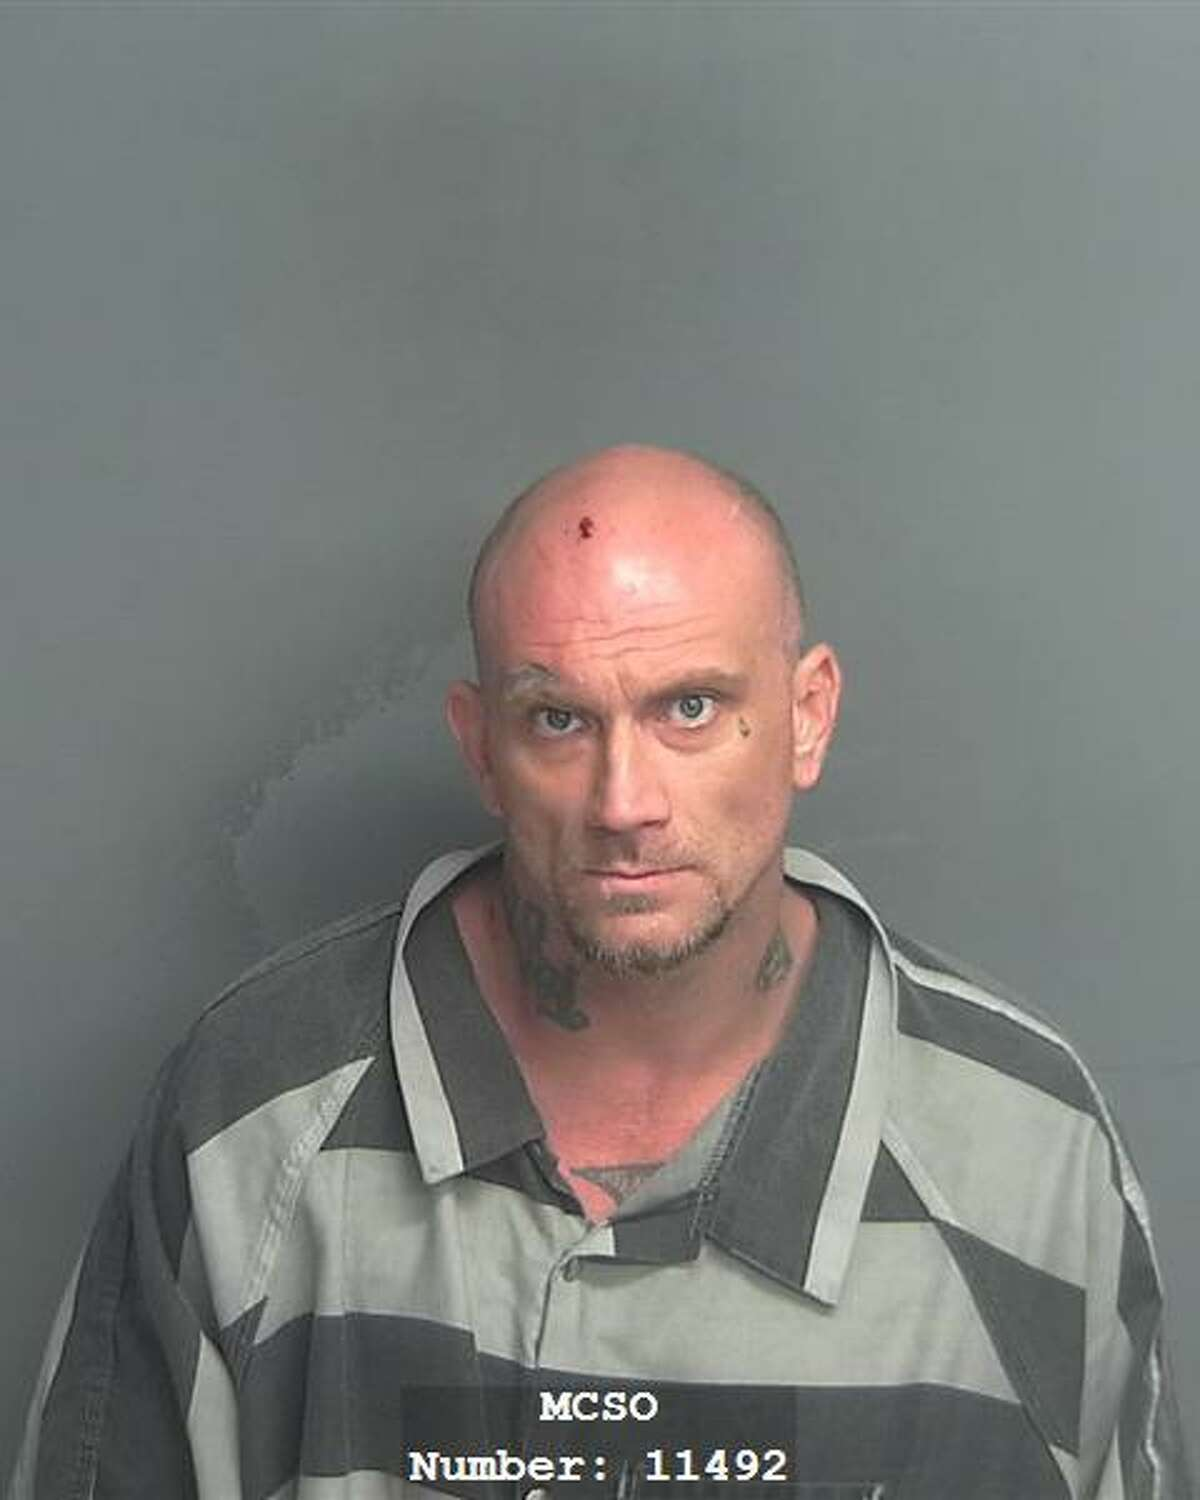 Mark Steven Myers, 39, of New Caney, is being charged with felony possession of a controlled substance and felony injury to a police service animal.